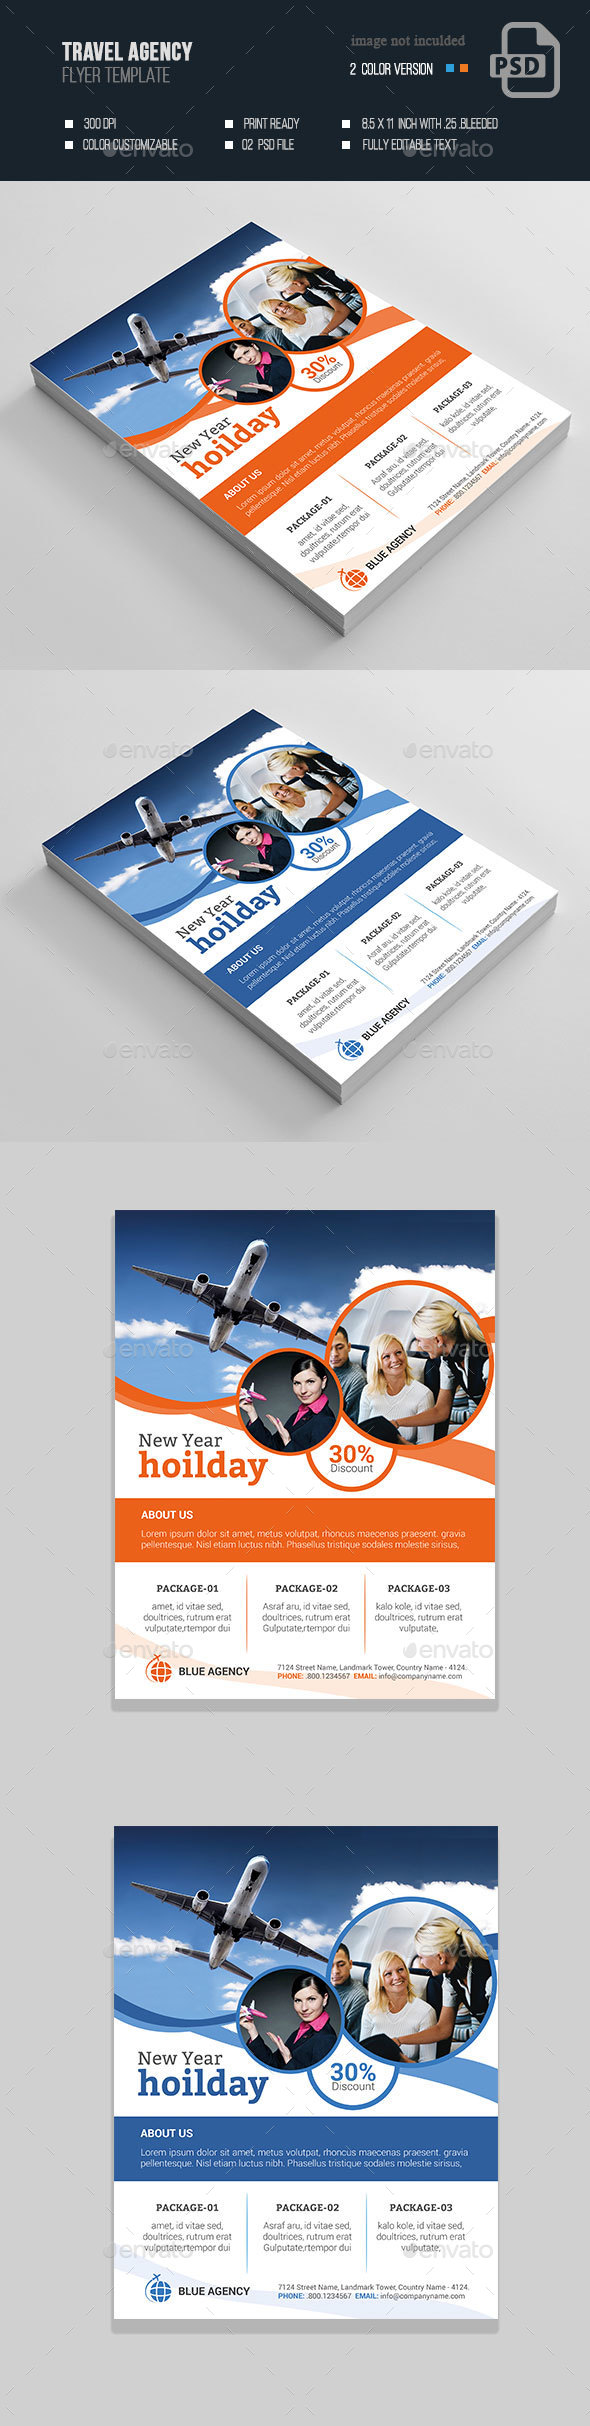 Travel Agency Flyer - Flyers Print Templates